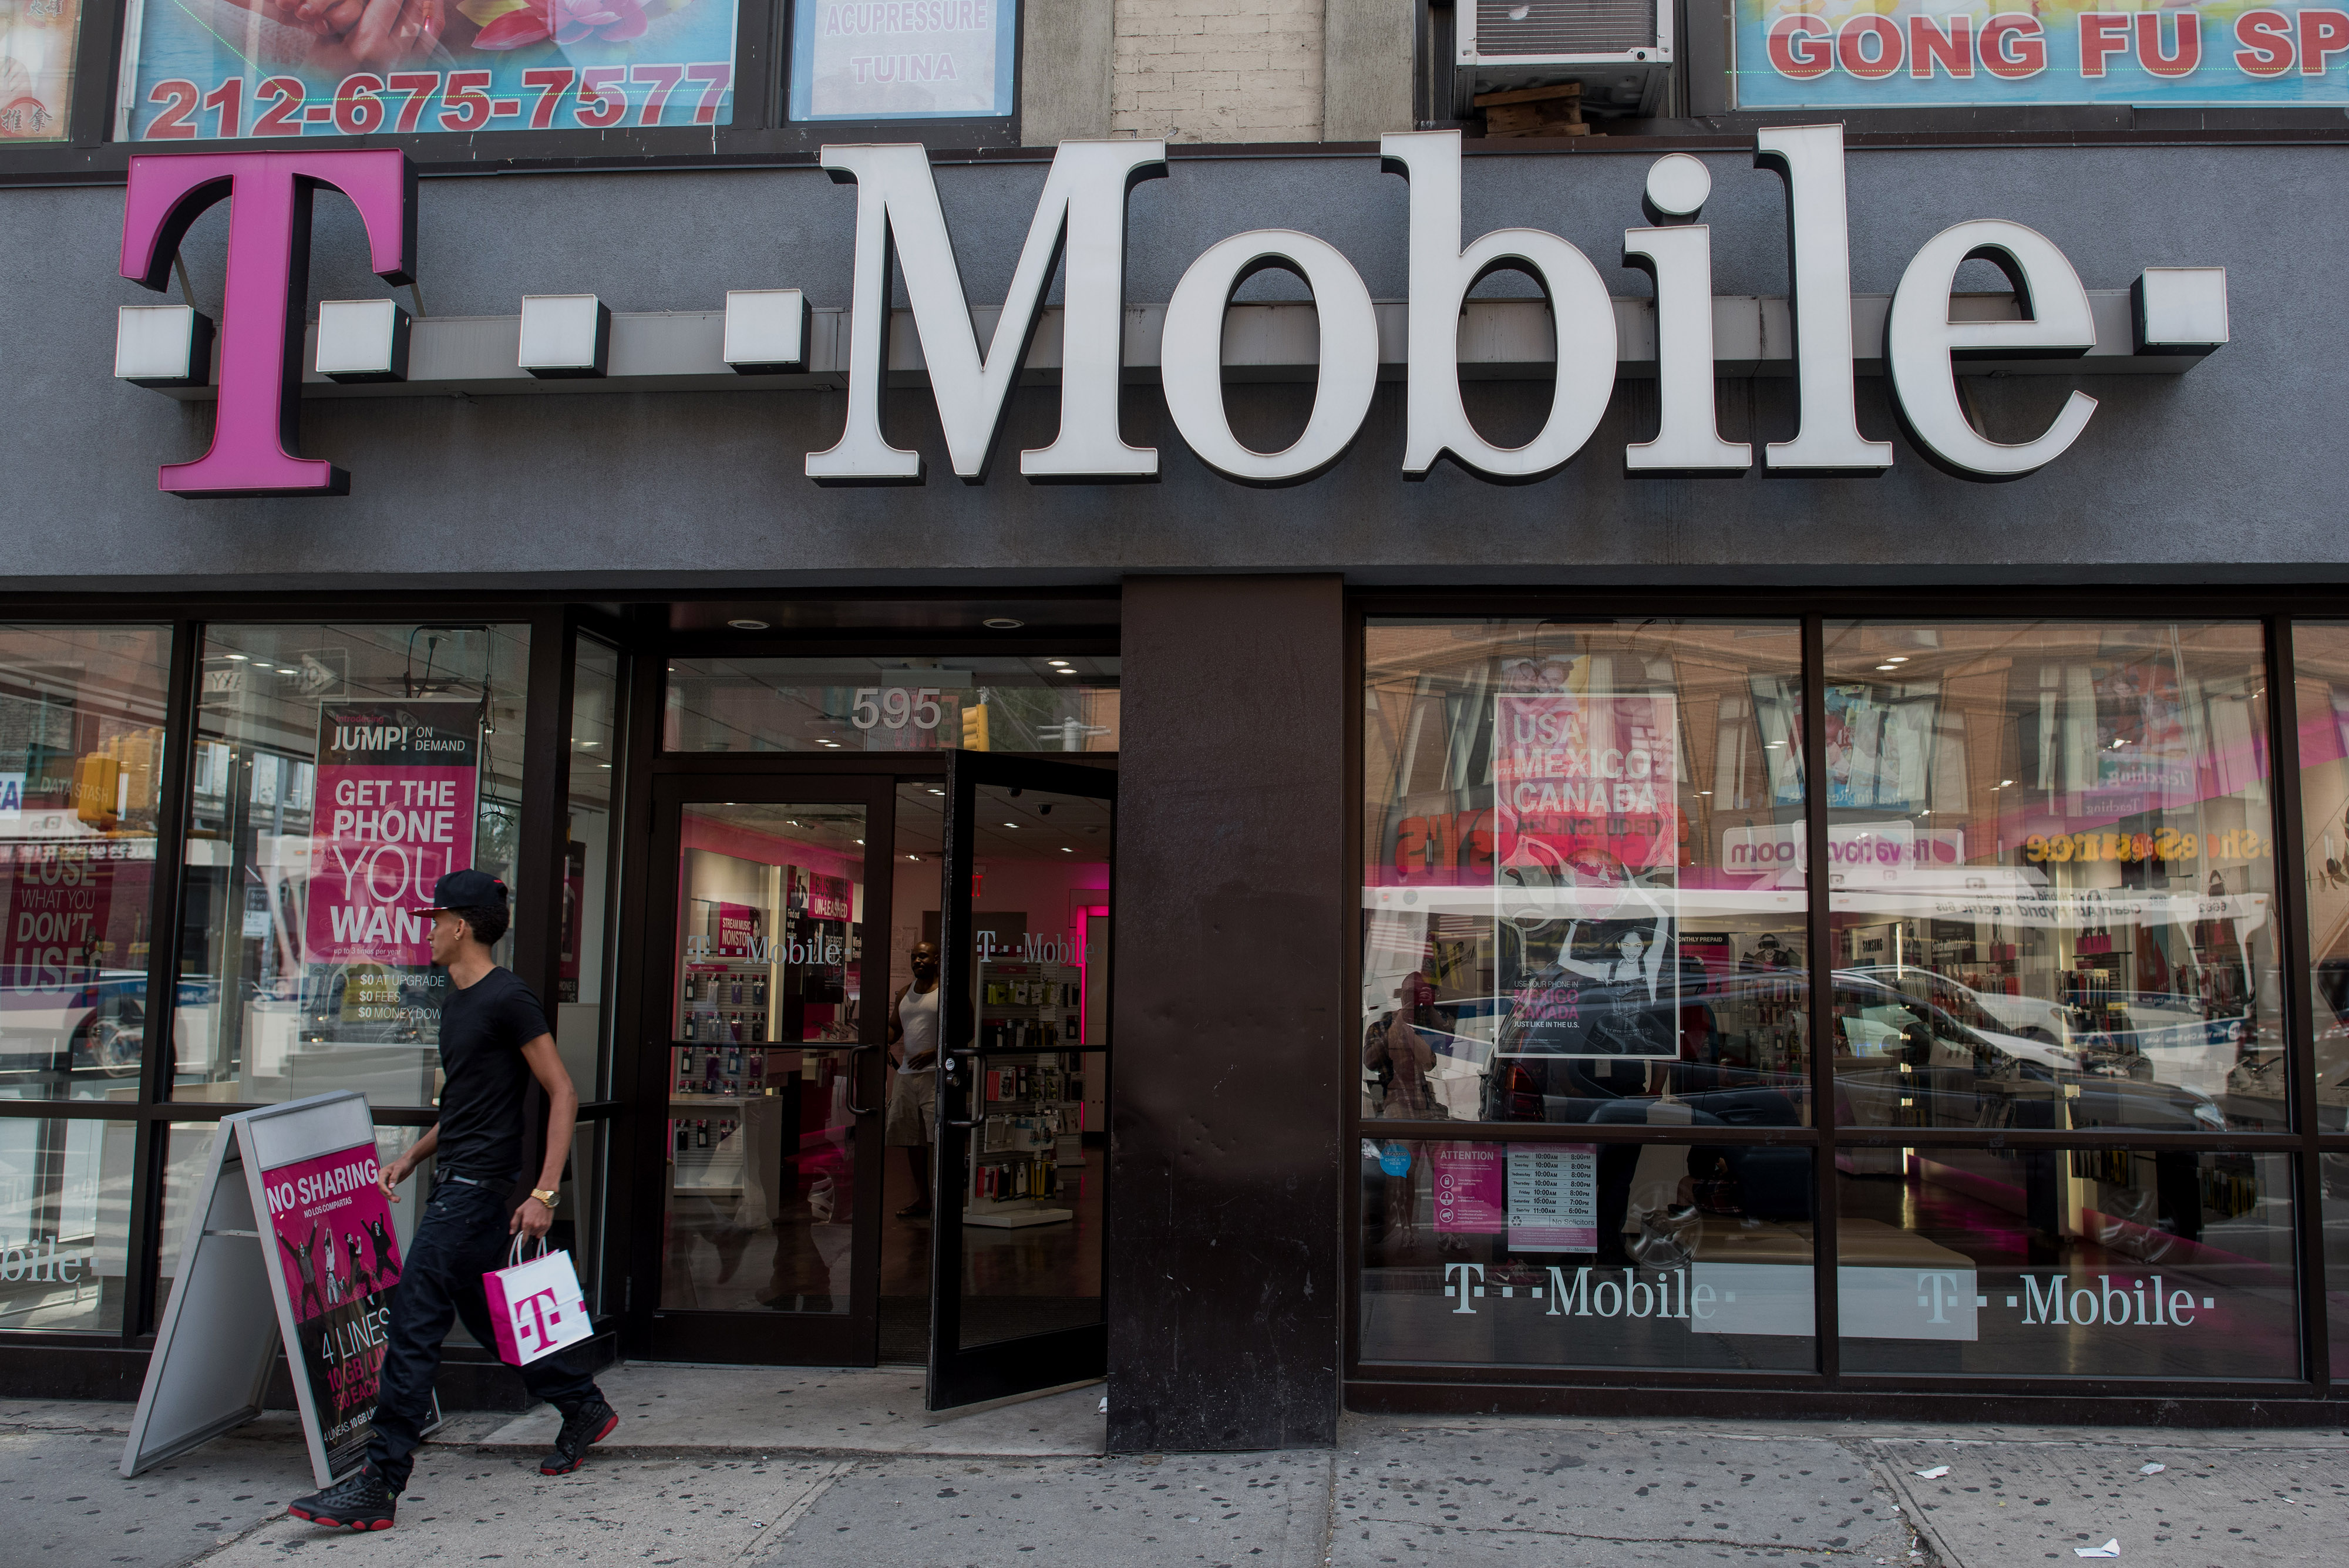 Pedestrians stroll by a A T-Mobile branch on the corner of West 17th Street and 6th Avenue in Manhattan, New York, U.S., on Sunday, July 26, 2015. T-Mobile will be announcing their earnings this week. Photographer: Craig Warga/Bloomberg *** Local Caption ***